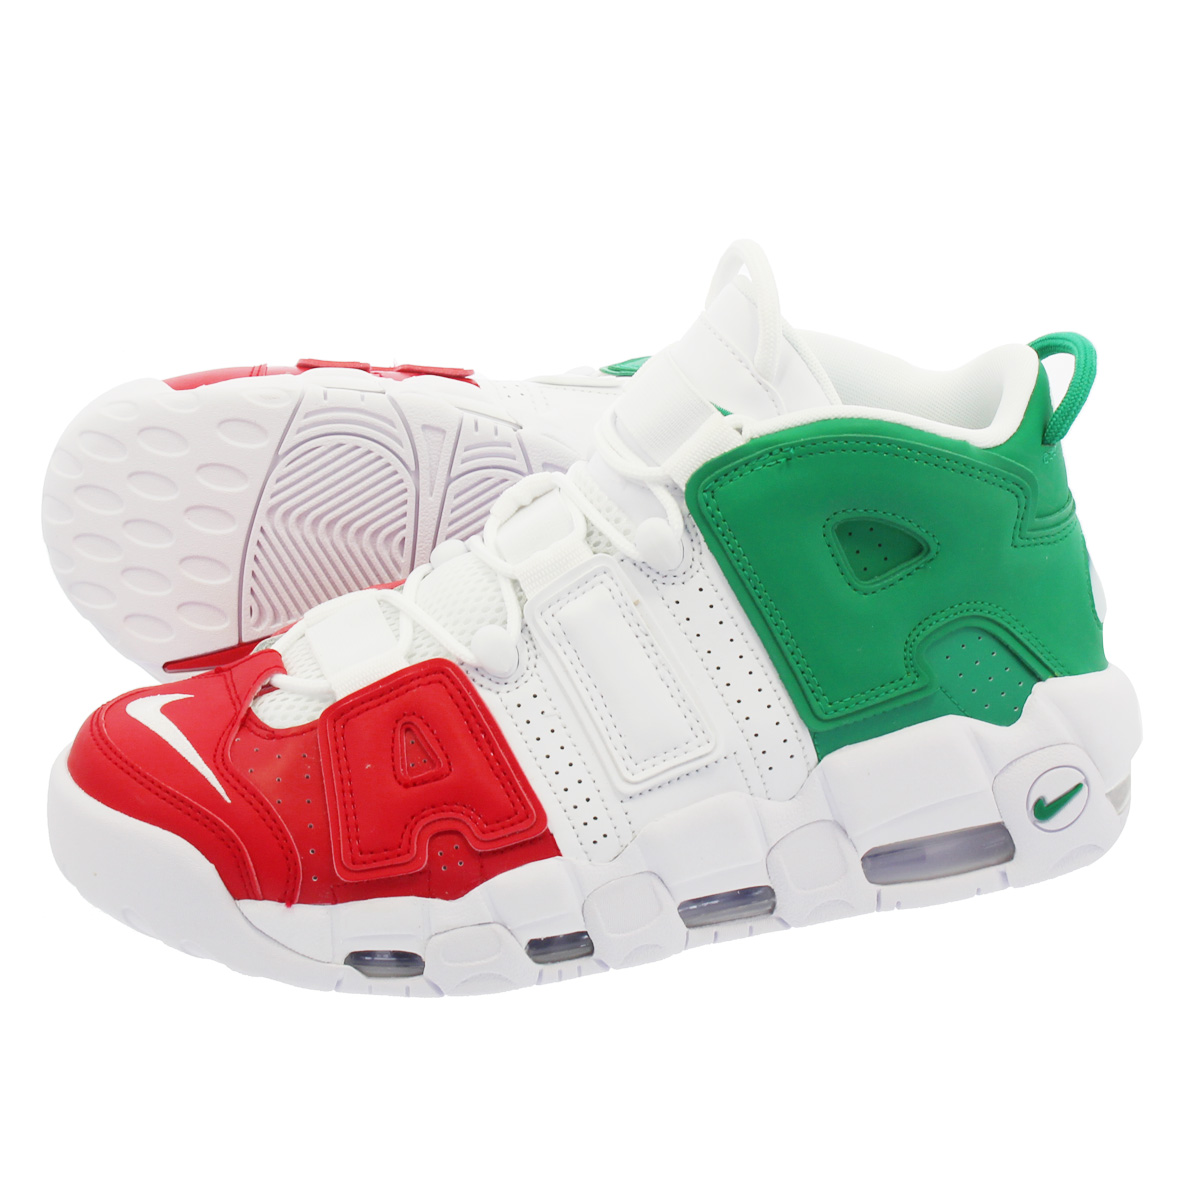 new style 369e9 8b756 NIKE AIR MORE UPTEMPO 96 ITALY QS Nike more up tempo 96 Italian QS  UNIVERSITY RED WHITE LUCID GREEN av3811-600